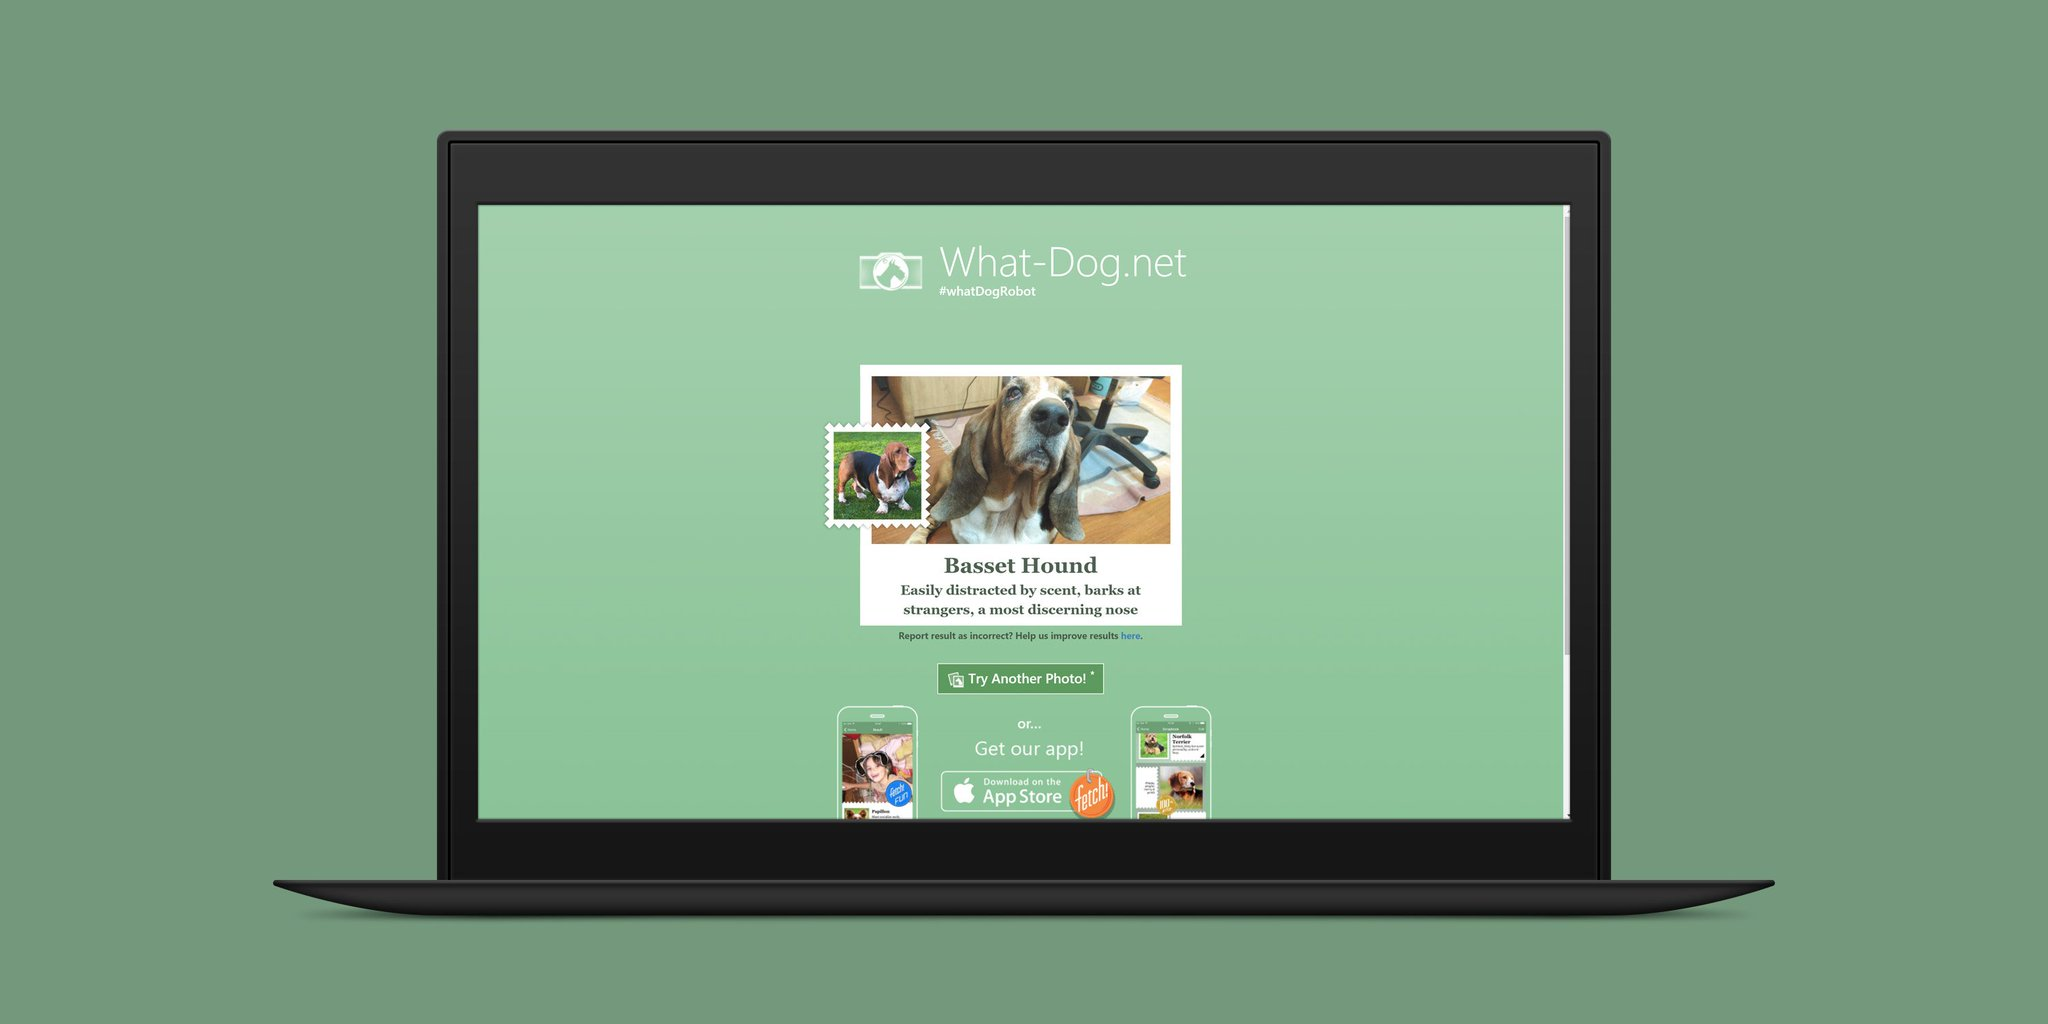 RT @TheNextWeb: Microsoft's new app can identify dog breeds from photos https://t.co/E07vUpu8GS https://t.co/Um8rgZTOgg